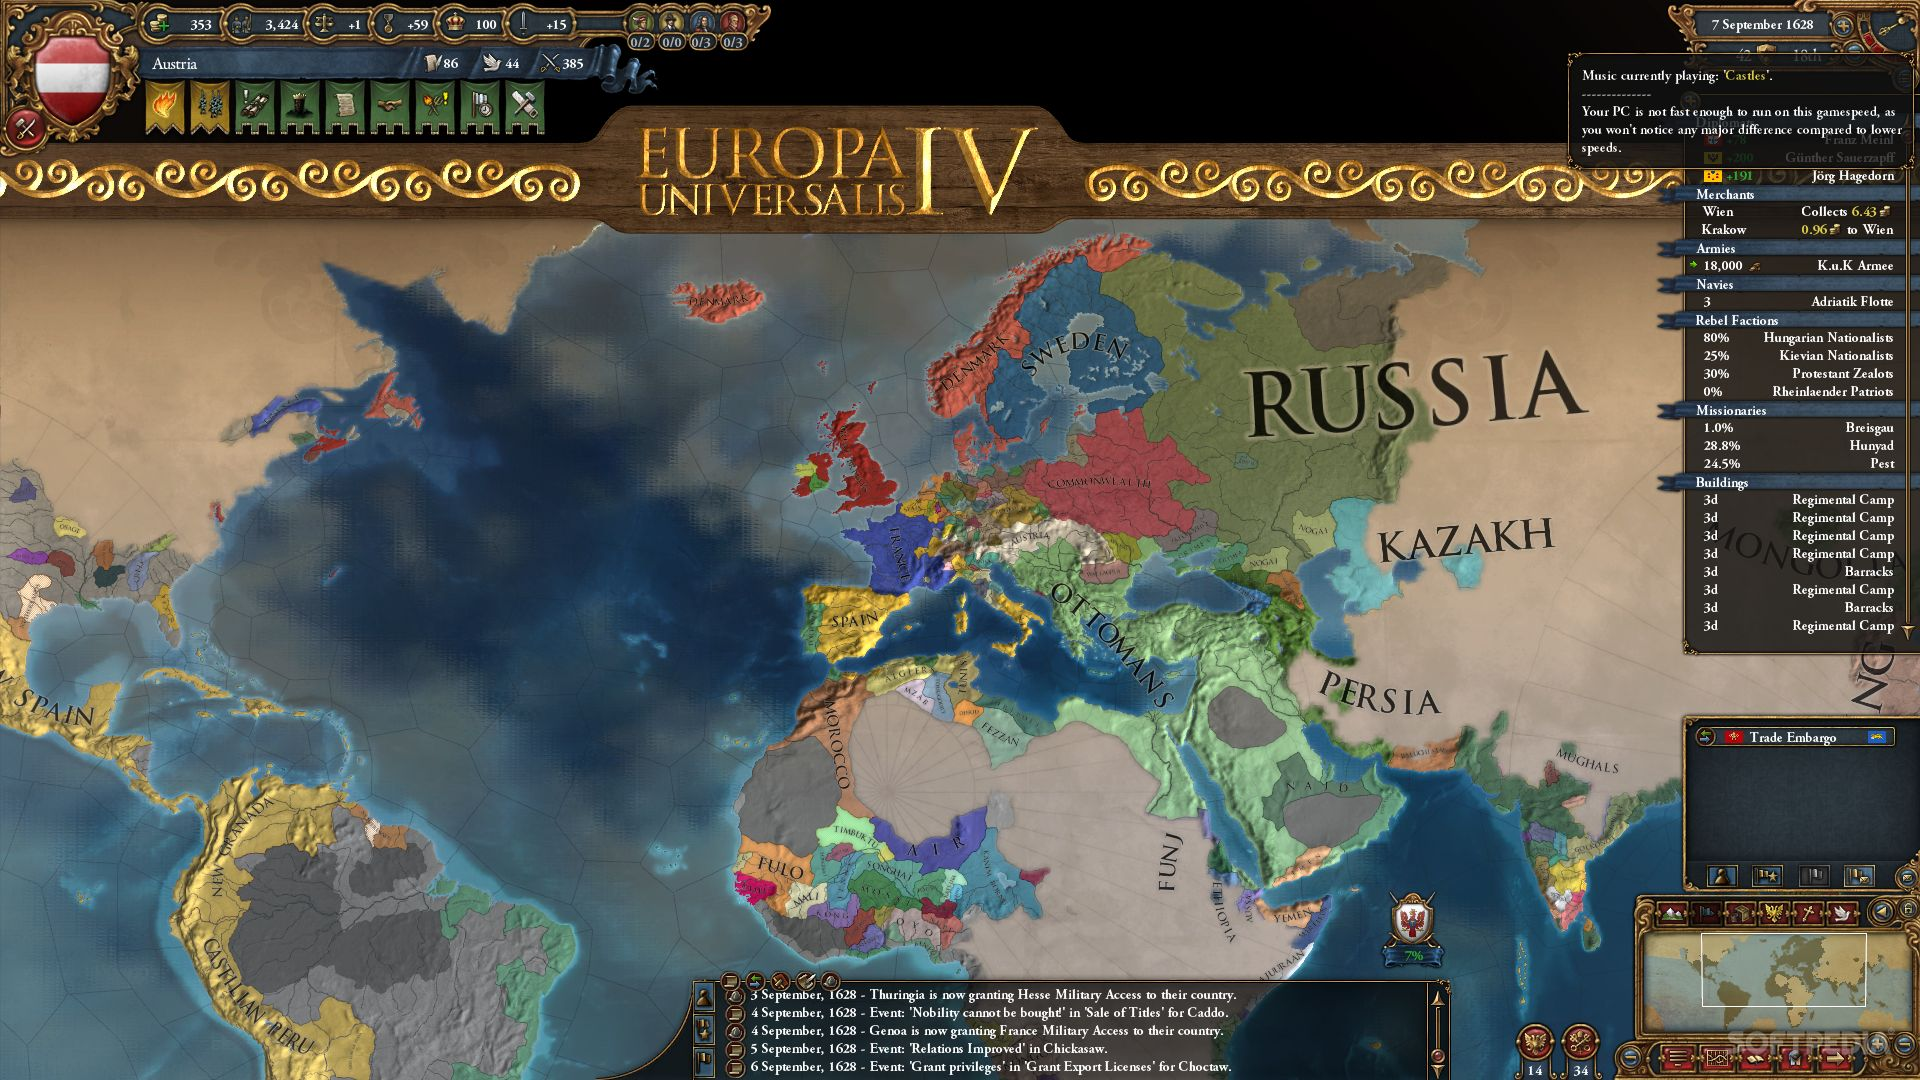 Europa universalis iv art of war review pc europa universalis iv art of war gumiabroncs Choice Image